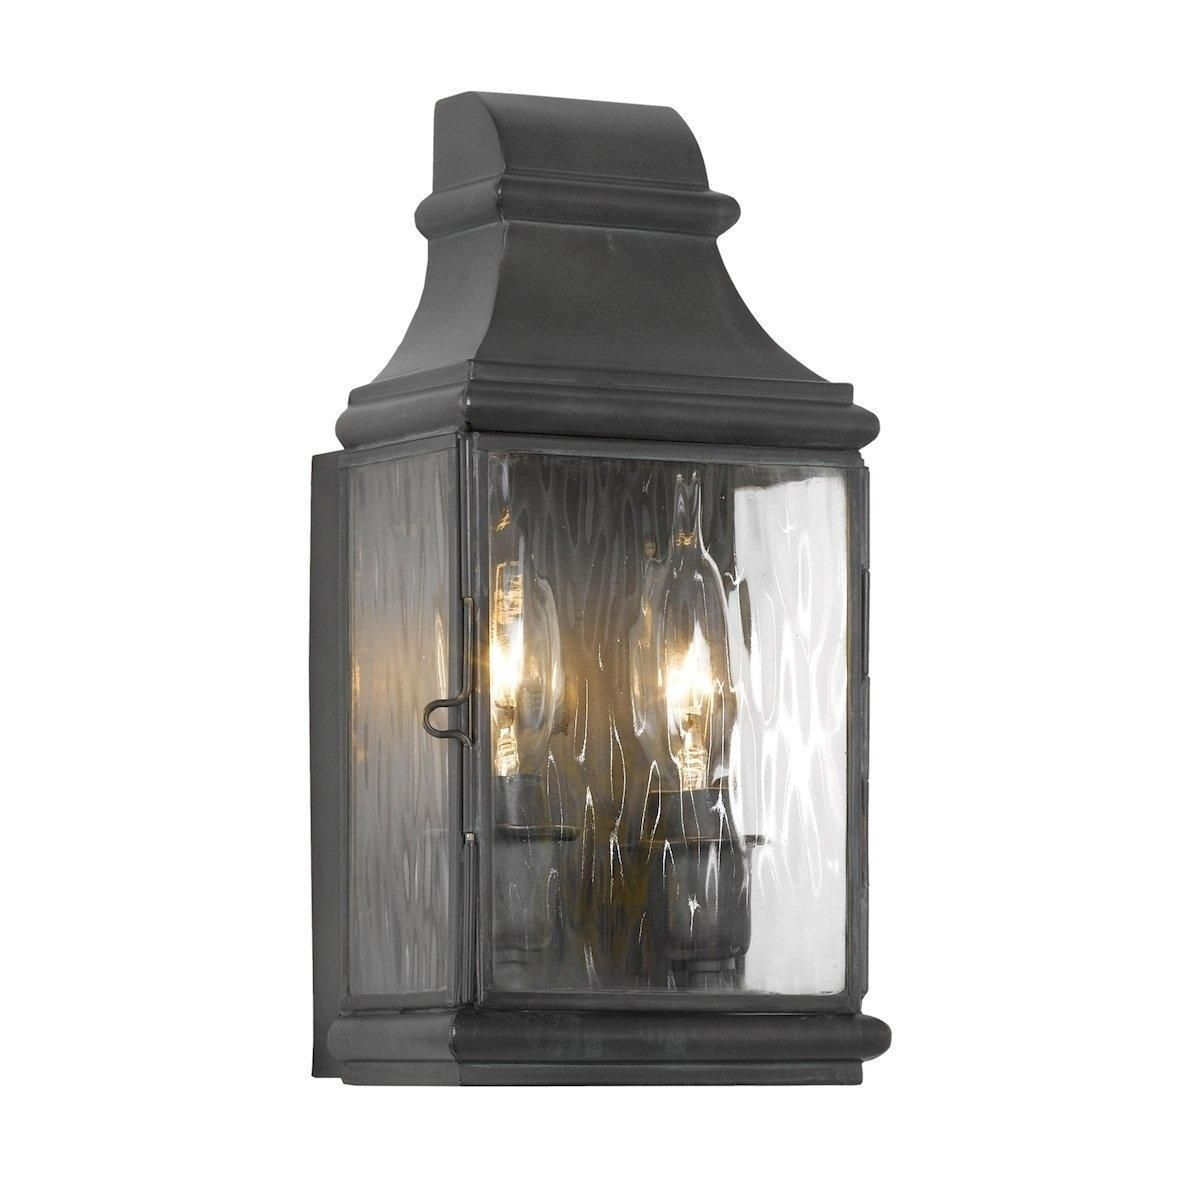 Jefferson outdoor wall sconce in charcoal and water glass elk c